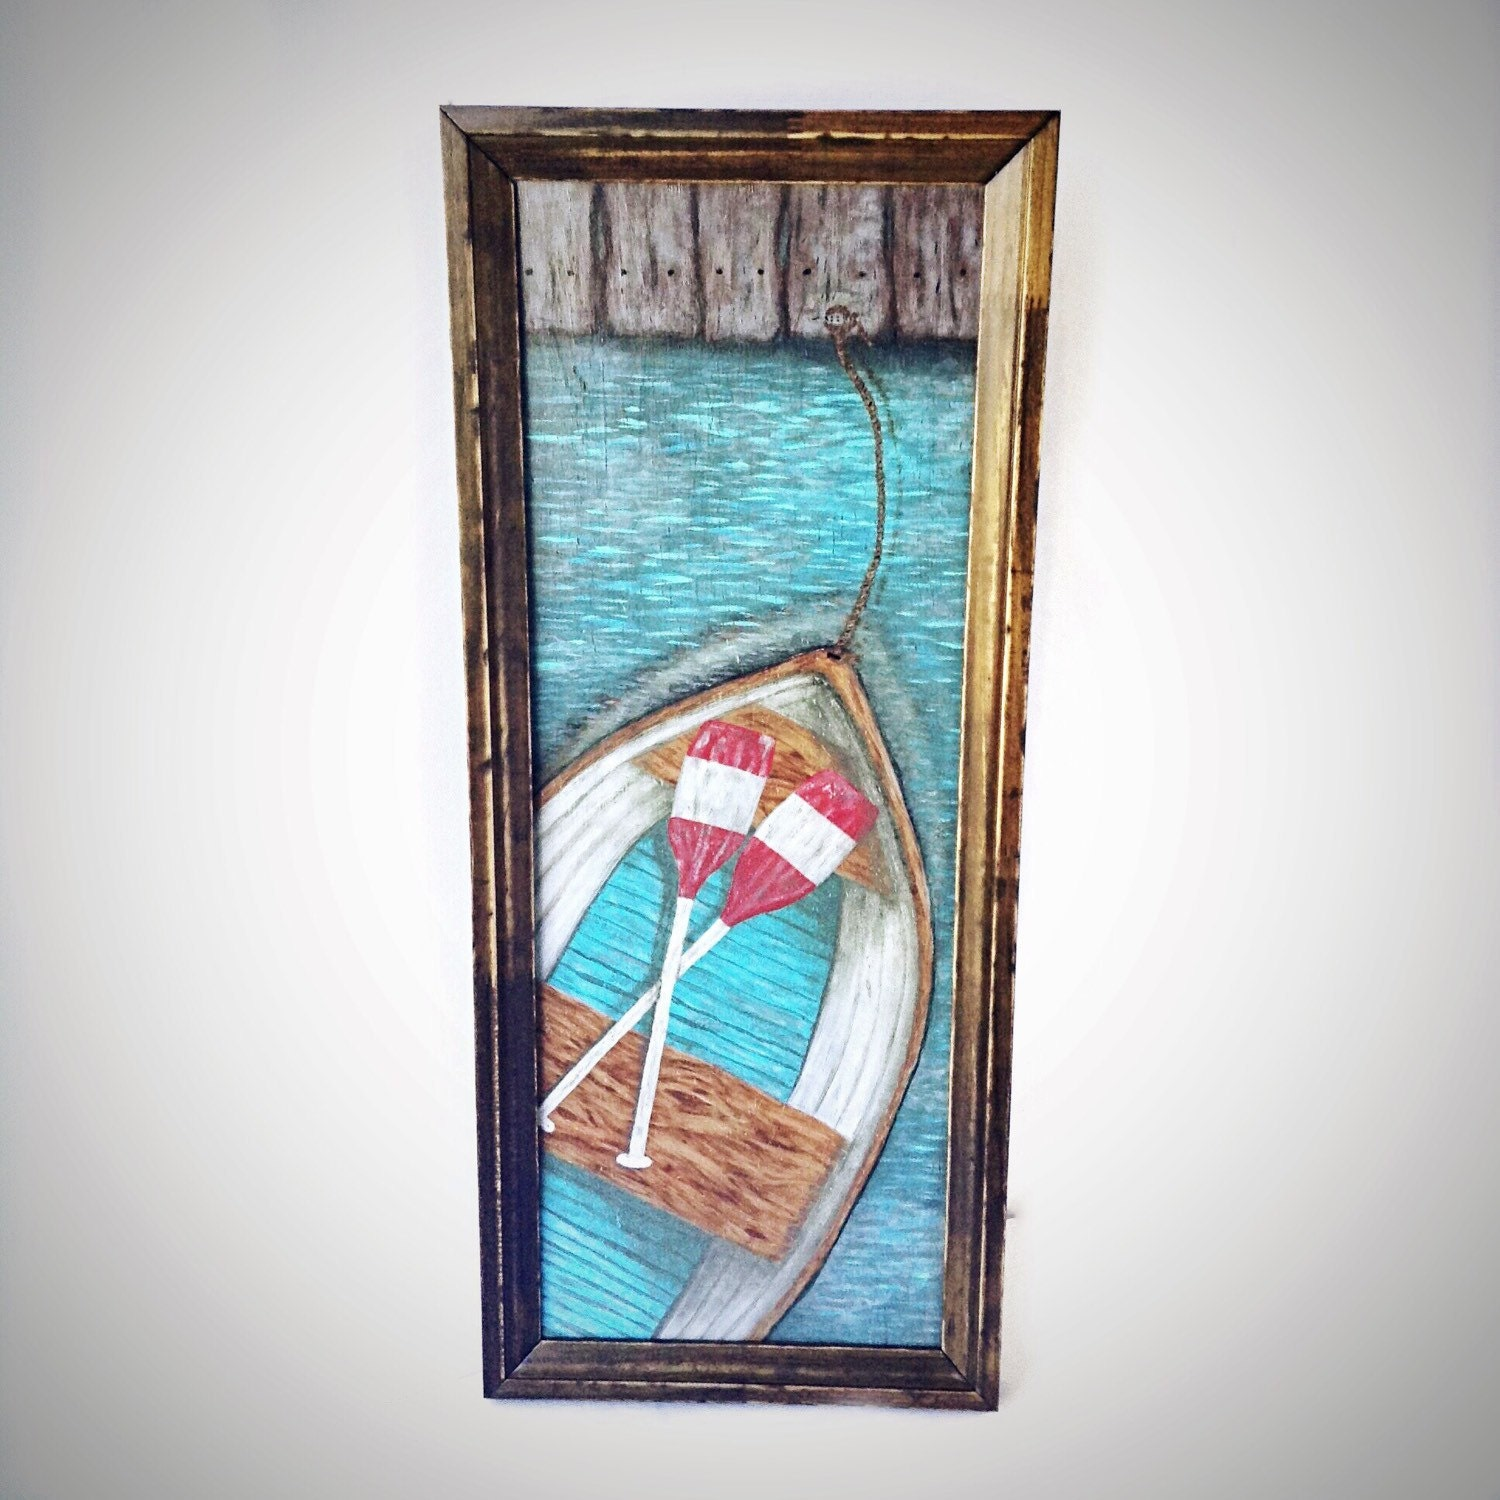 Nautical Wall Decor Oars: Large Nautical Wall Art Row Boat Wooden Oars Coastal